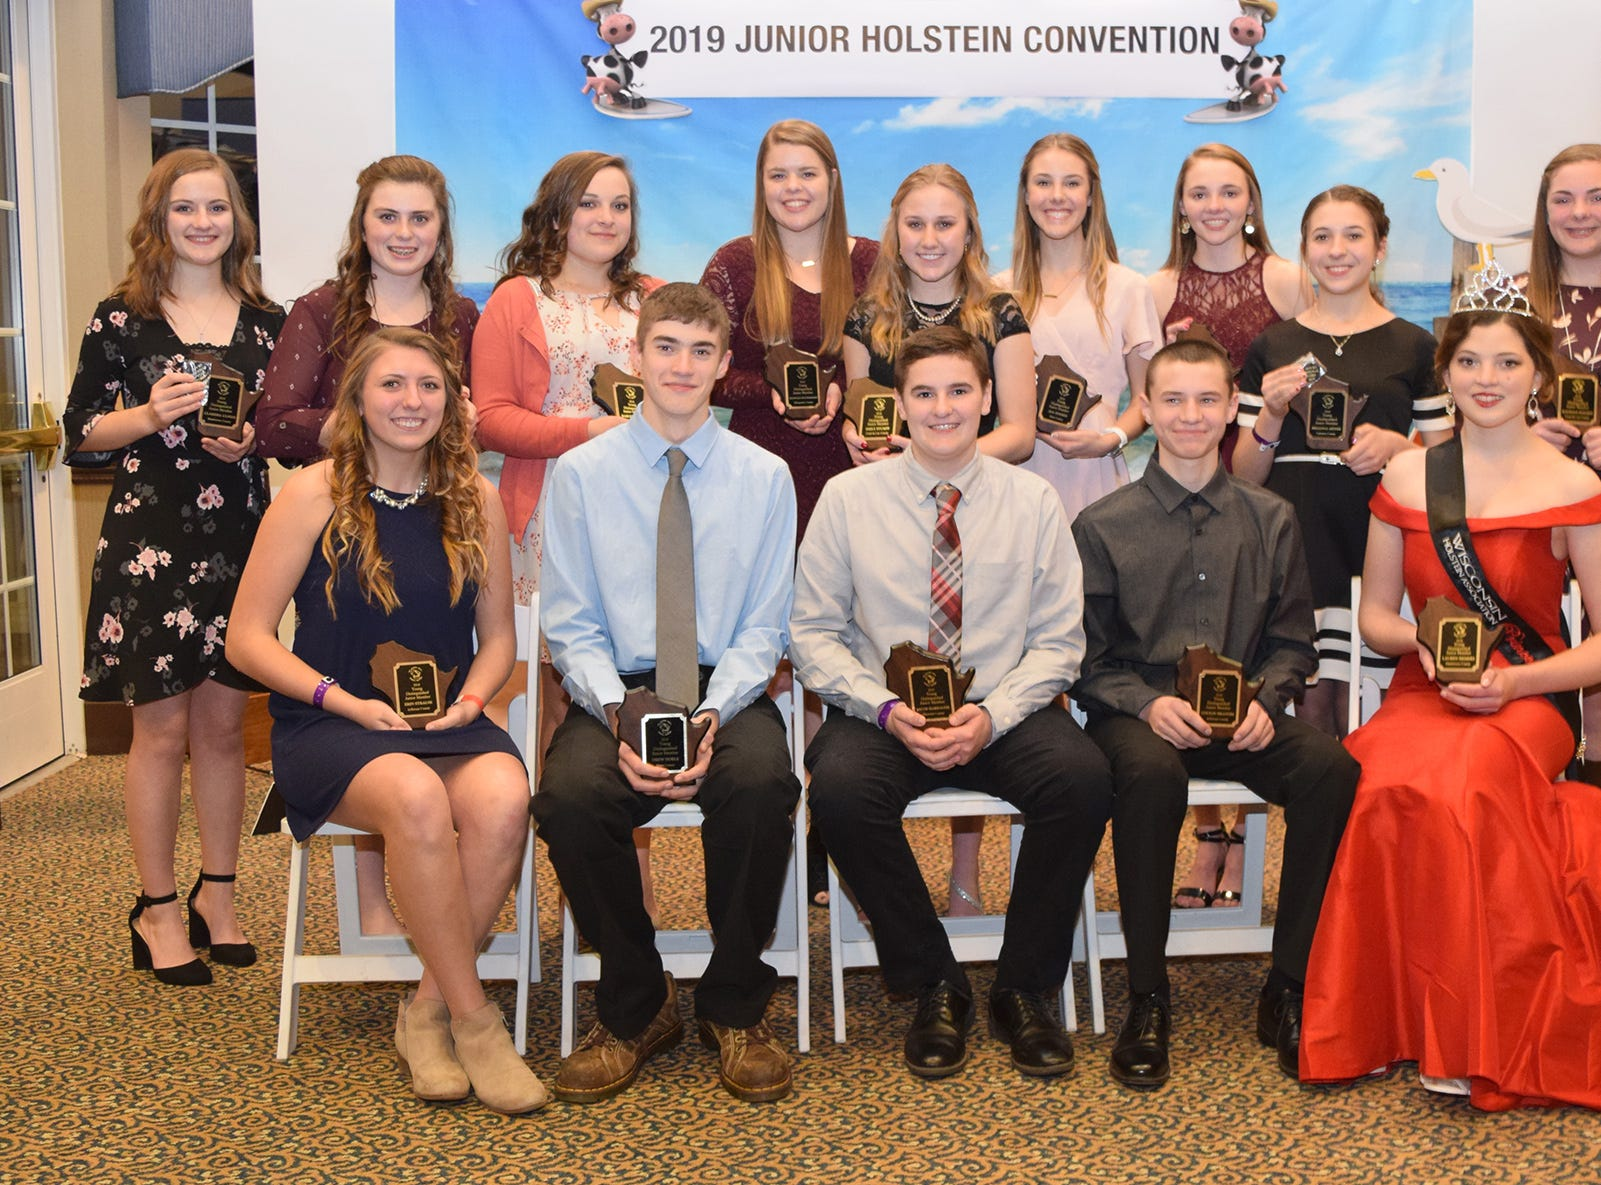 The Young Distinguished Junior Members honored at the Wisconsin Junior Holstein Convention are front row (from left) Erin Strauss, Drew Noble, Jacob Harbaugh, Colton Brandel, and Lauren Siemers. Back row (from left) Clarissa Ulness, Ainsley Noble, Kaelyn Weigel, Hannah Hockerman, Emily Stumpf, Ava Endres, Ashlyn Sarbacker, Brianna Meyer, and Kaydence Hodorff.